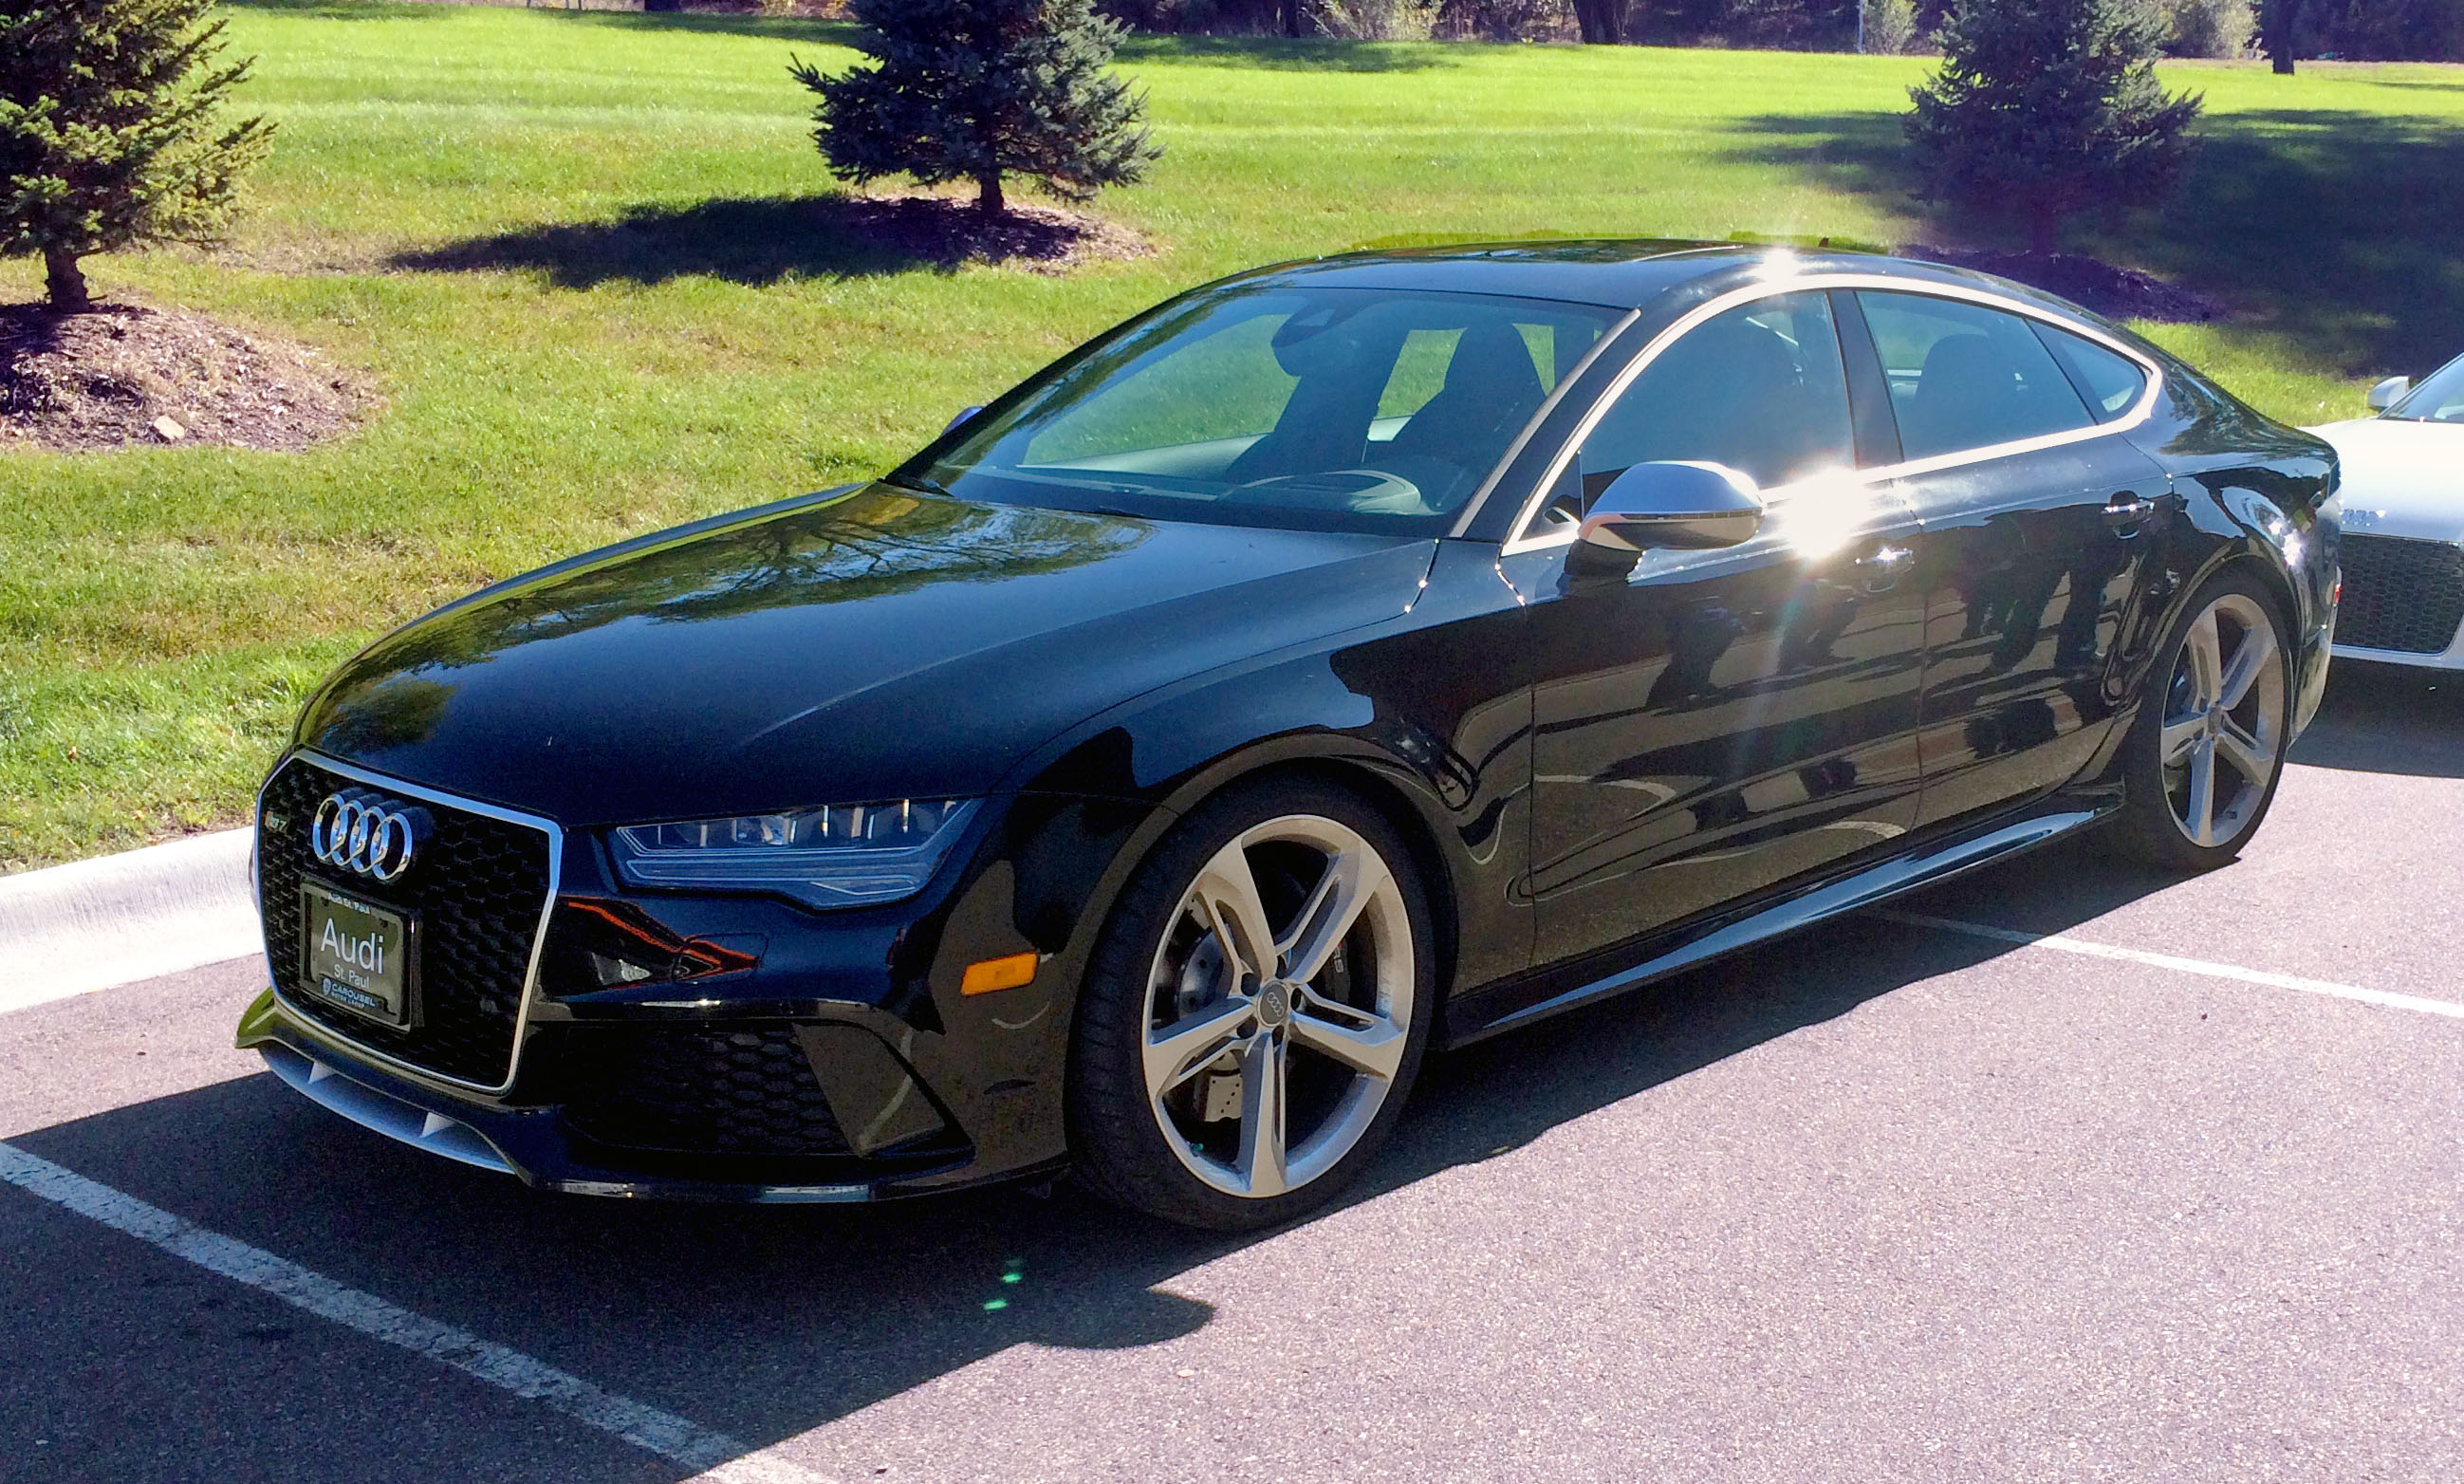 Driving 5 Dream Cars In 1 Day! Part 2 Of 6 – Audi RS7